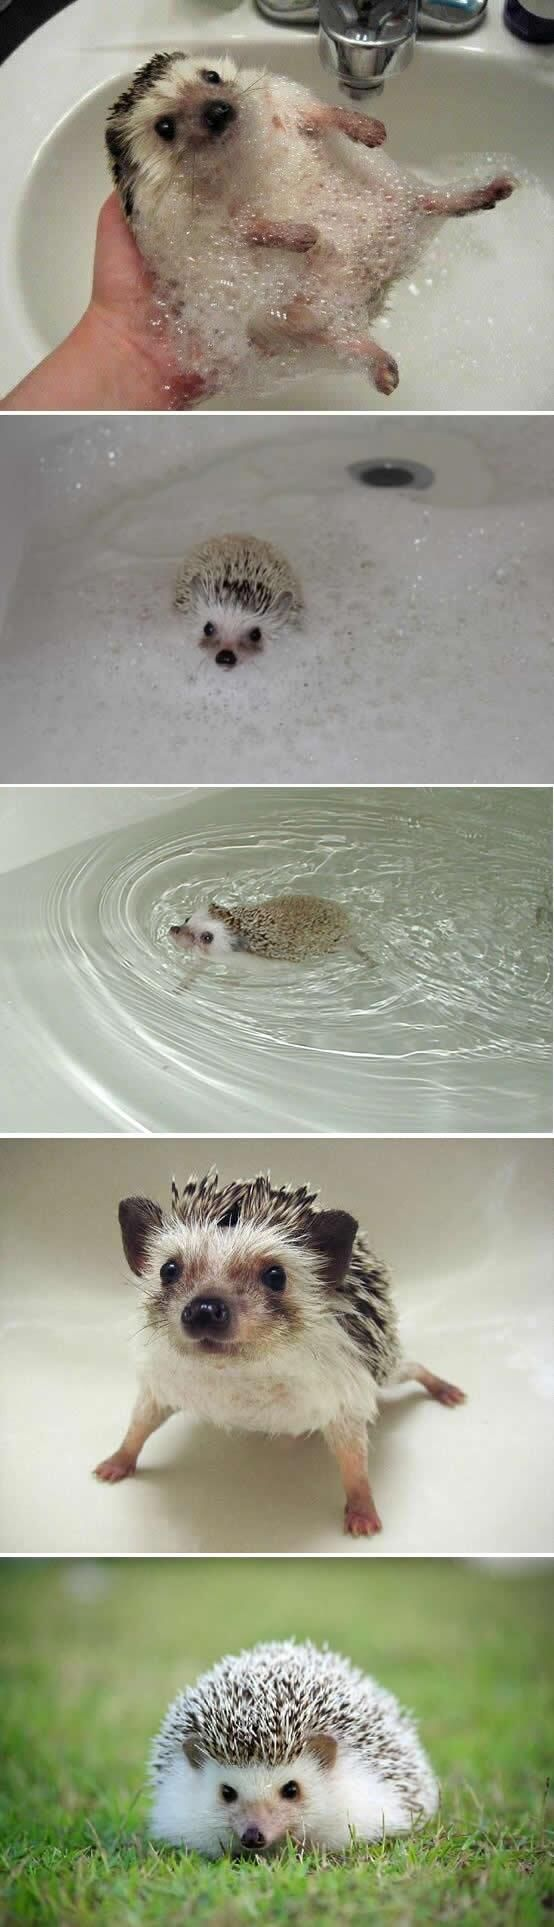 Hedgehogs provide your daily dose of cuteness!